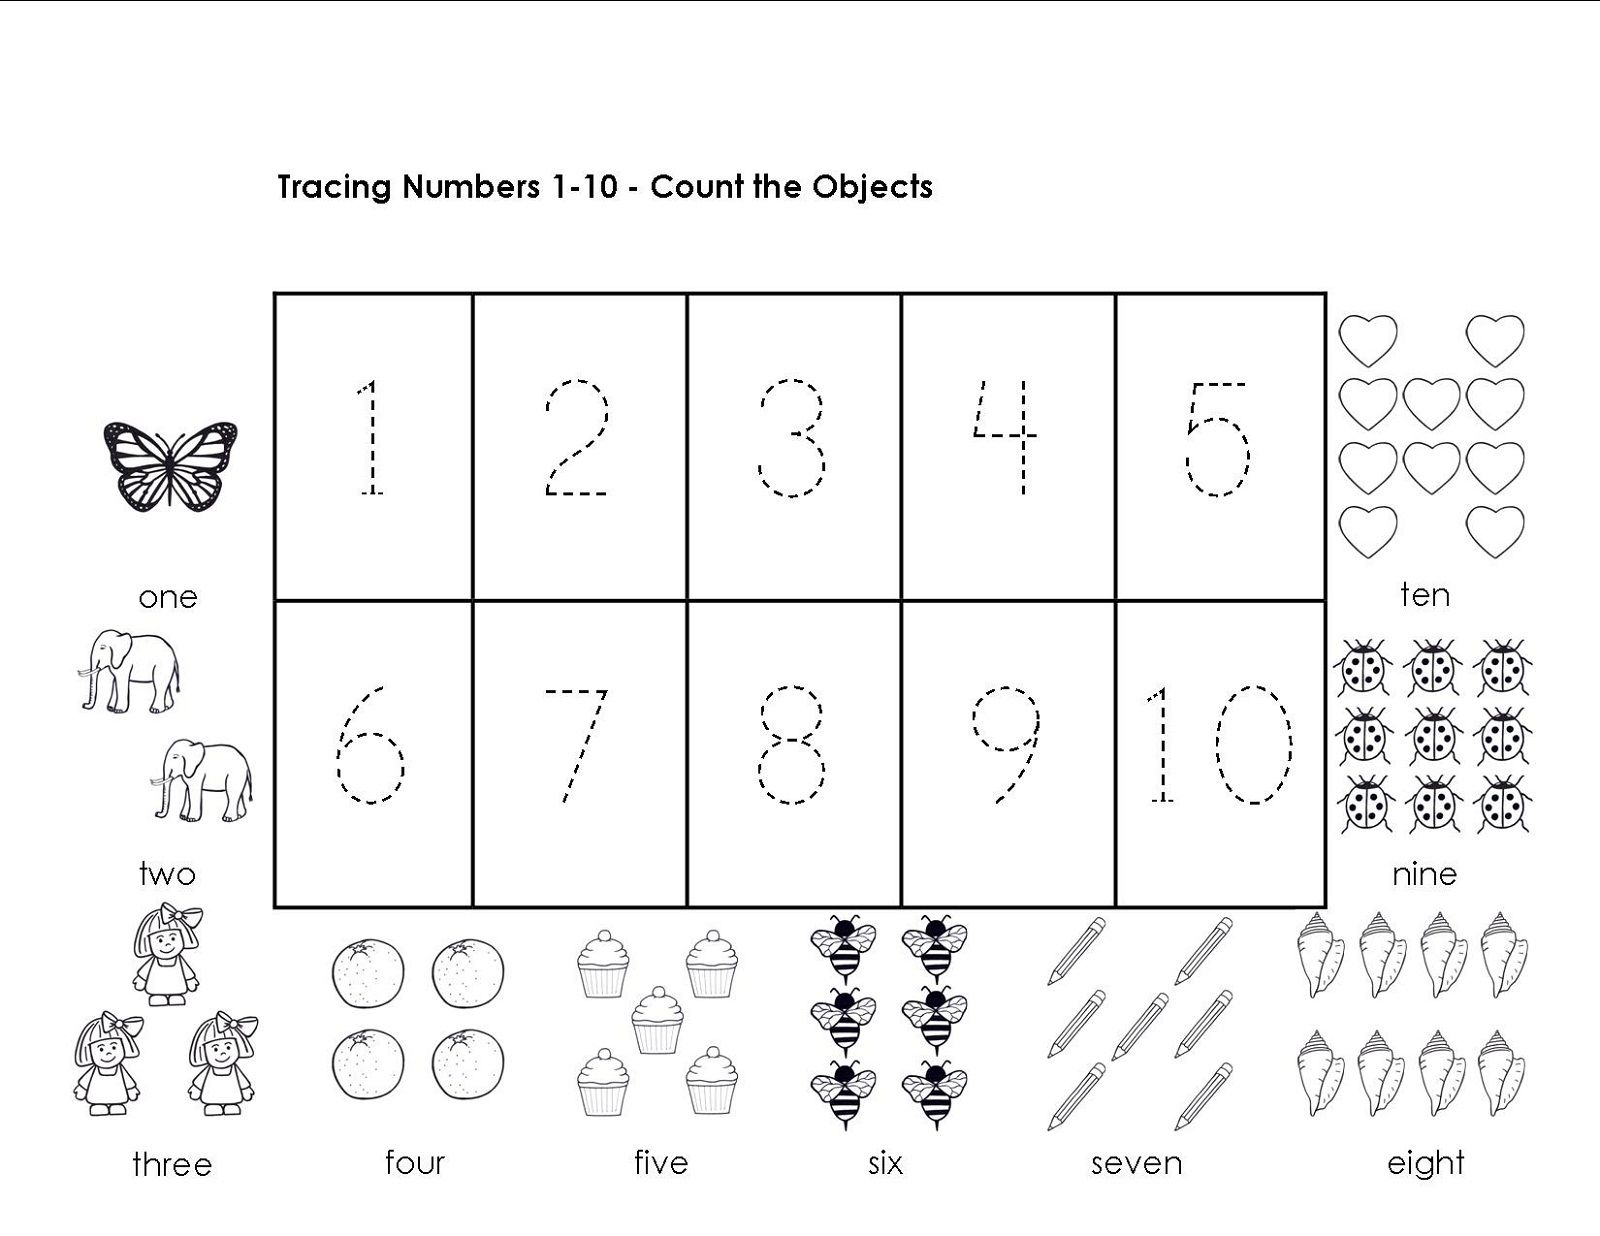 Worksheets Number Tracing Worksheets 1-10 tracing numbers 1 10 worksheets activity shelter kids shelter